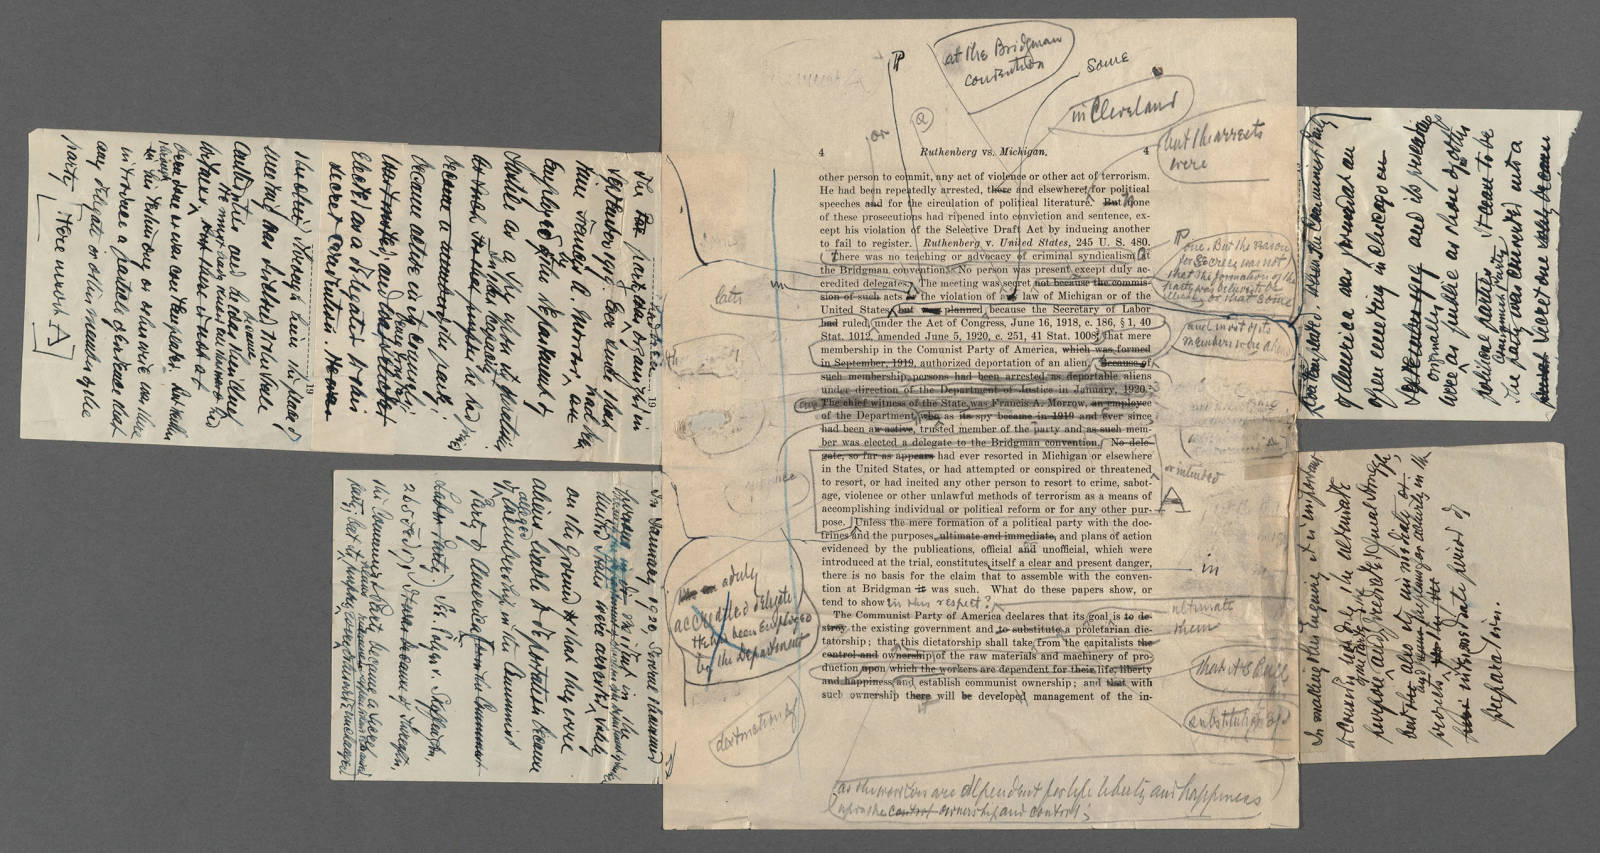 Historical photo of Brandeis Papers marked up with corrections